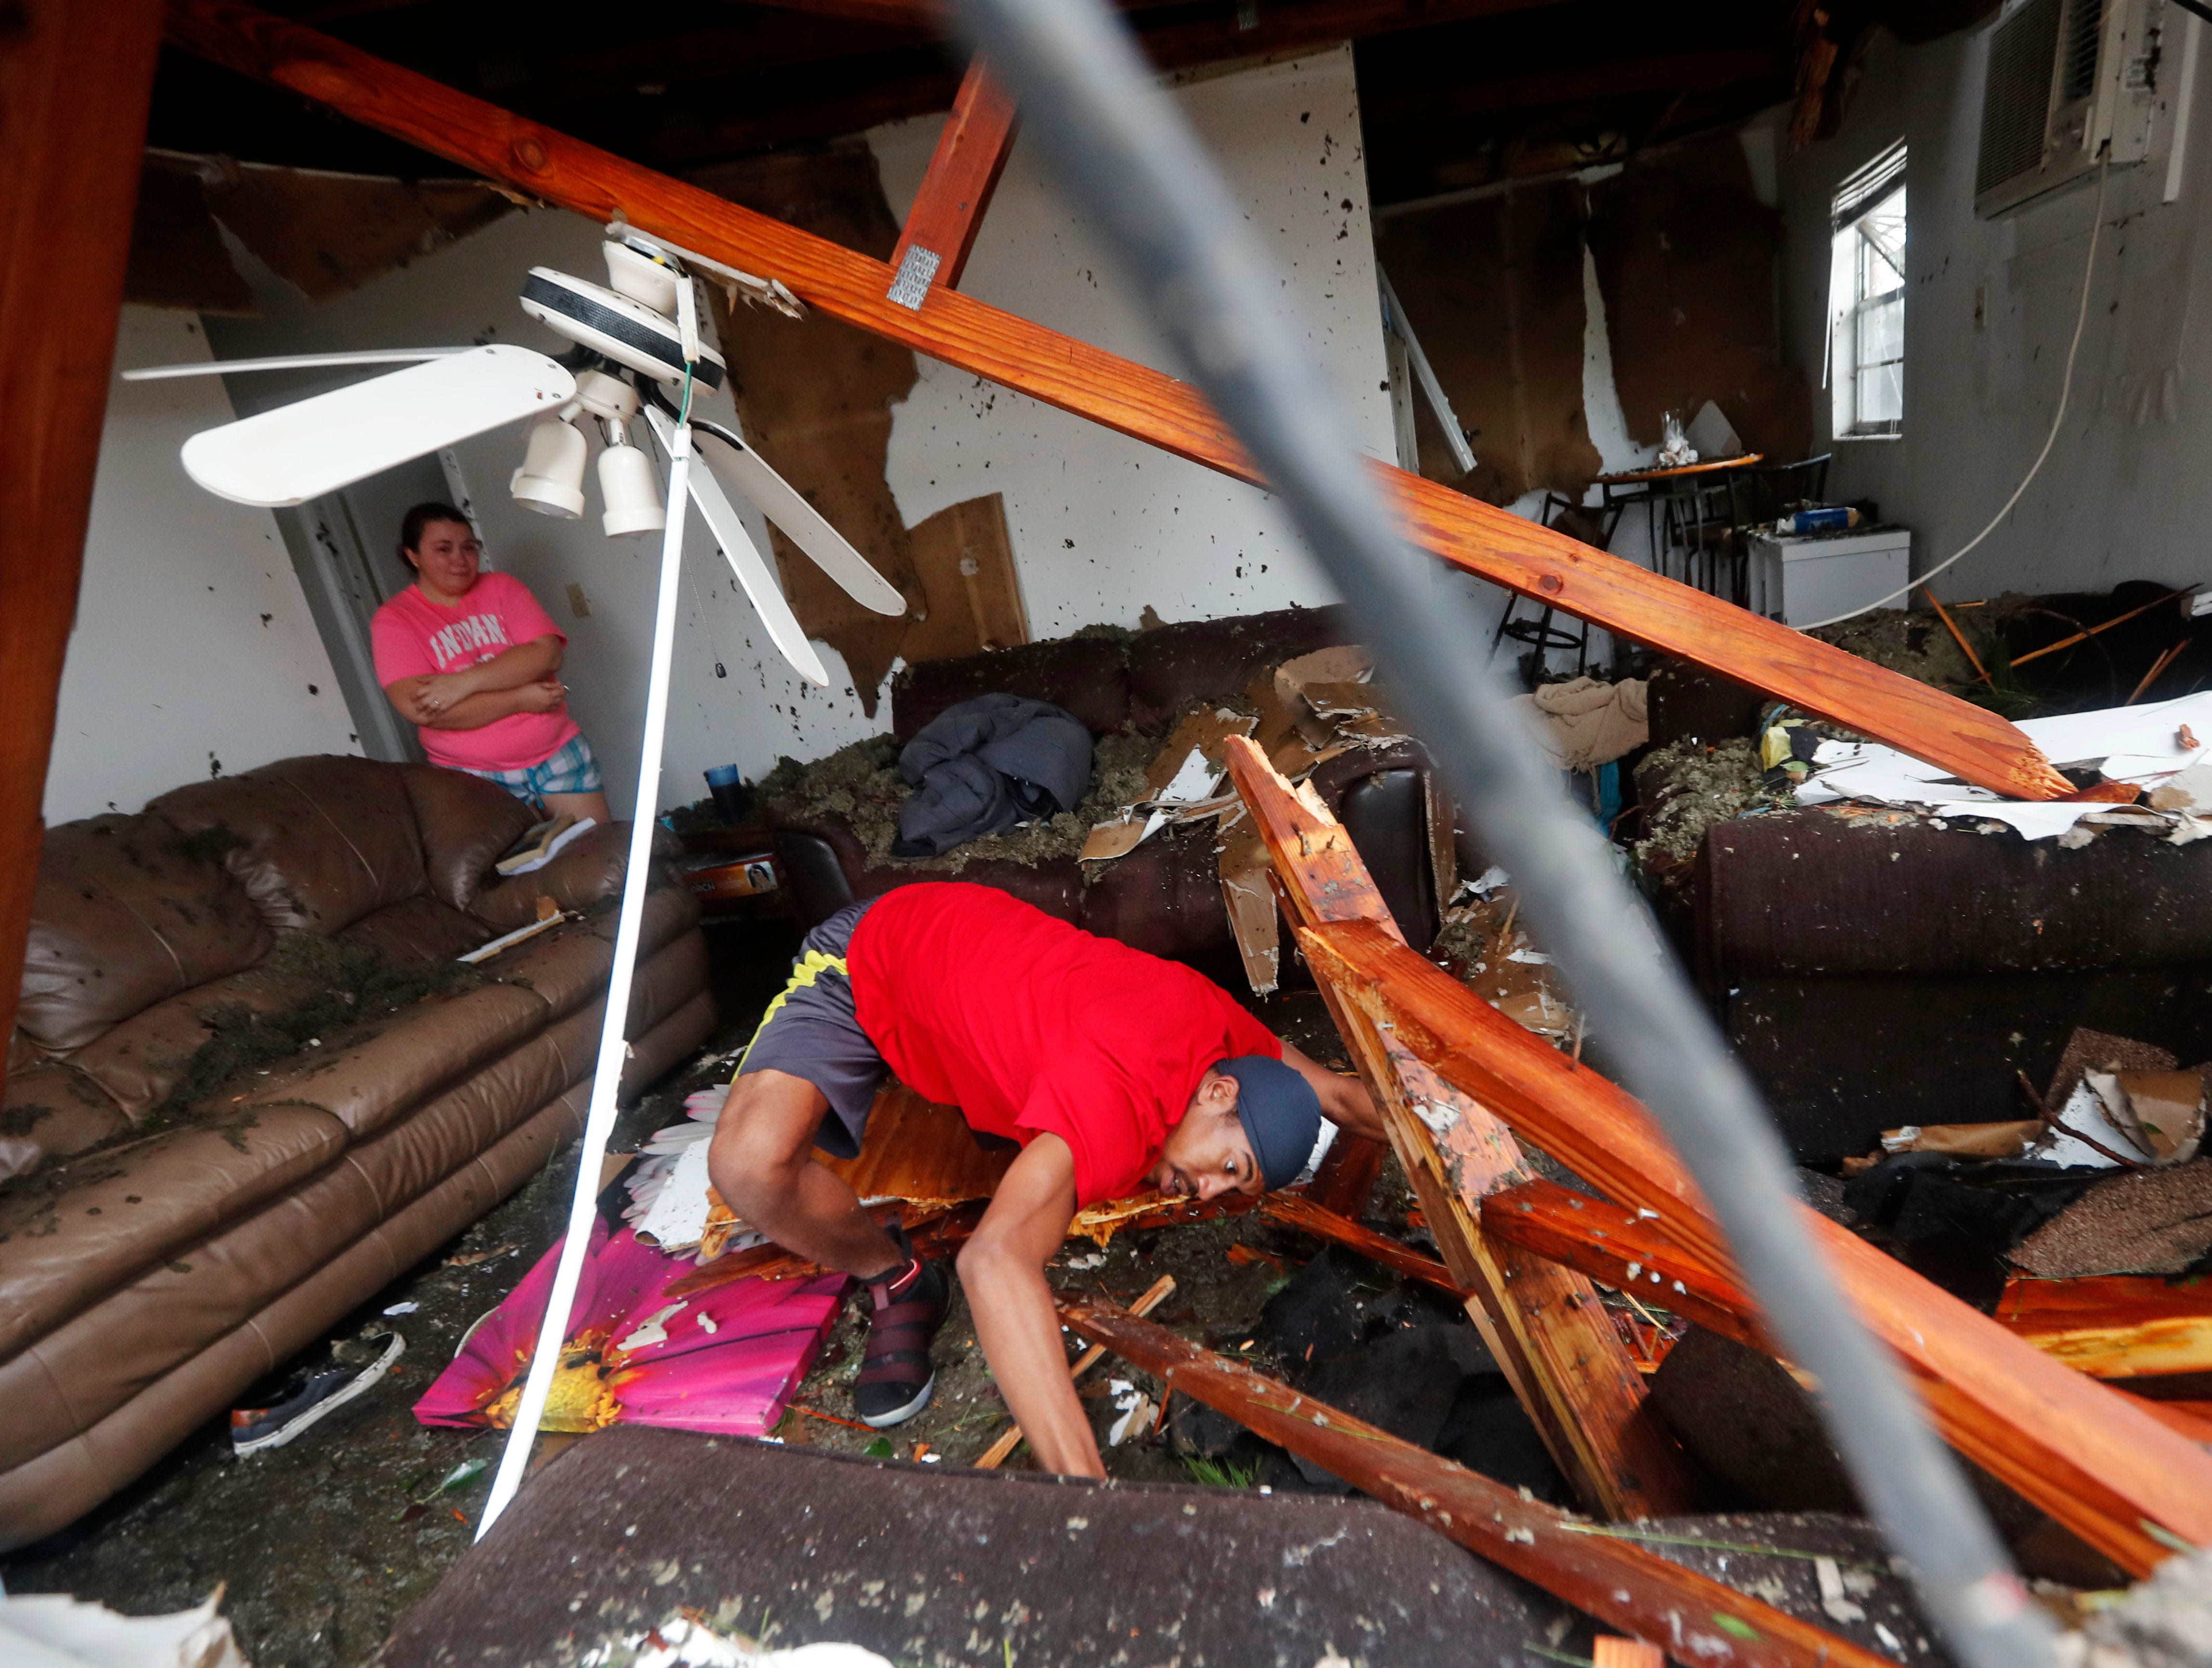 Dorian Carter looks under furniture for a missing cat after several trees fell on their home during Hurricane Michael in Panama City, Fla., Wednesday, Oct. 10, 2018. Supercharged by abnormally warm waters in the Gulf of Mexico, Hurricane Michael slammed into the Florida Panhandle with terrifying winds of 155 mph Wednesday, splintering homes and submerging neighborhoods.